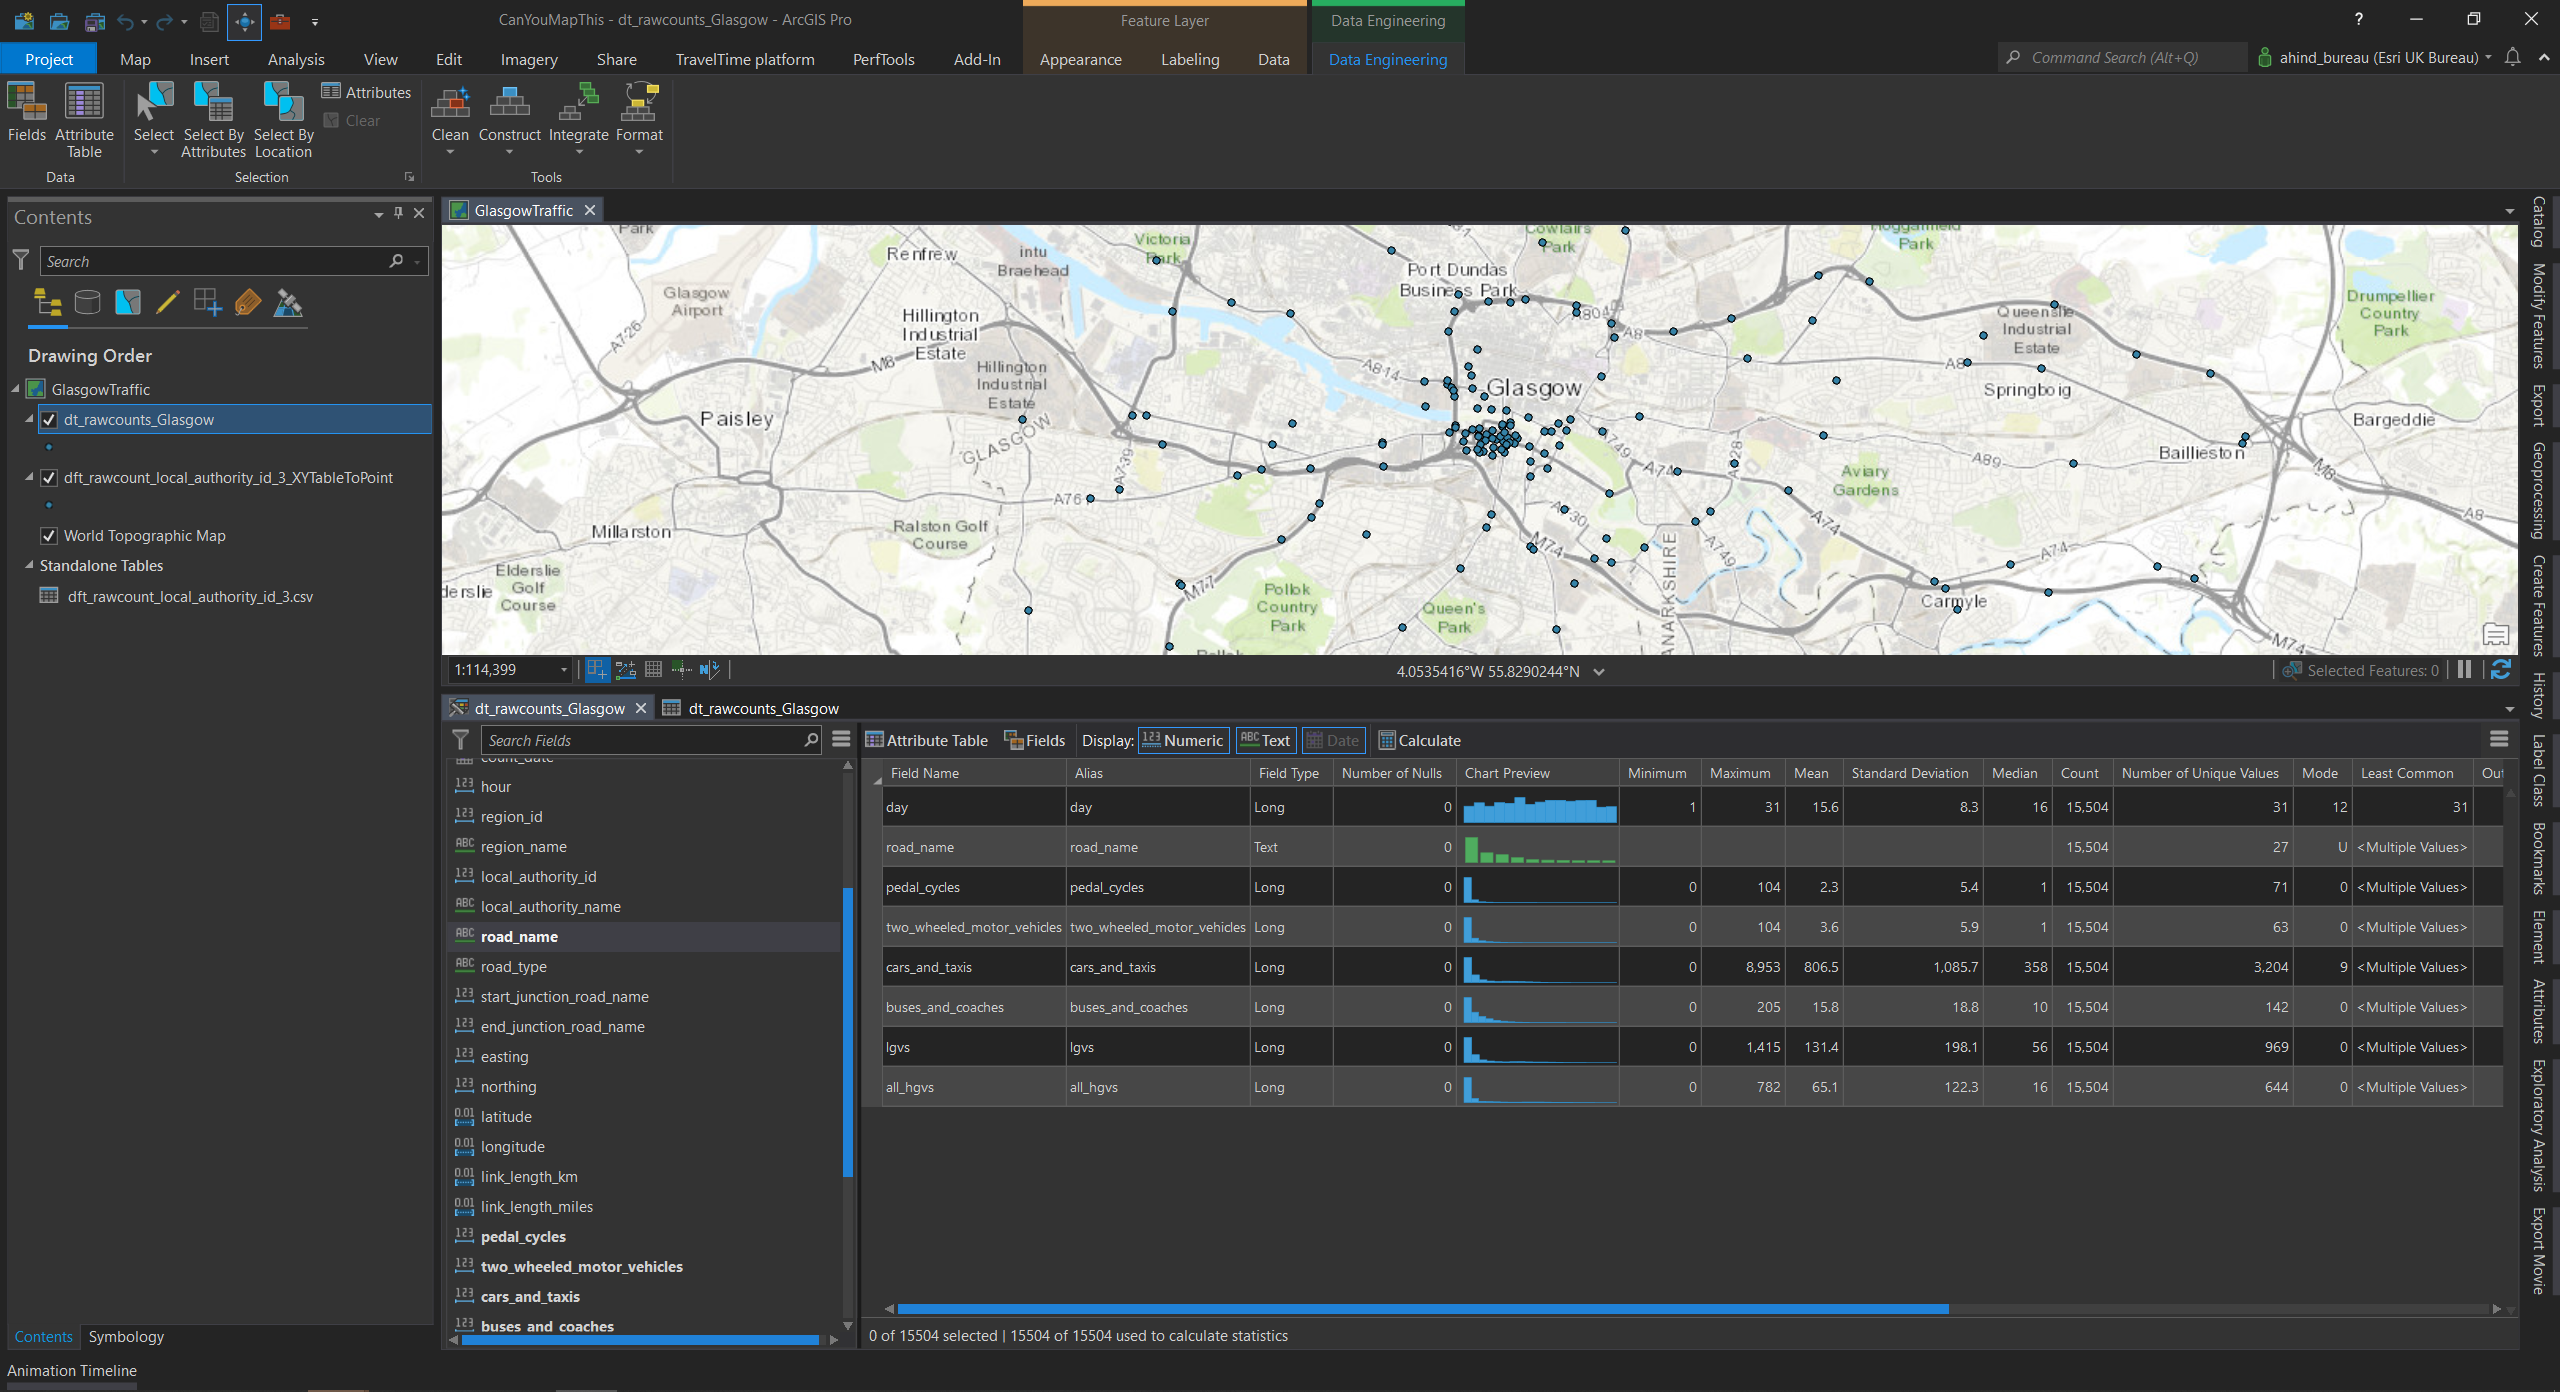 The new Data Engineering view in ArcGIS Pro